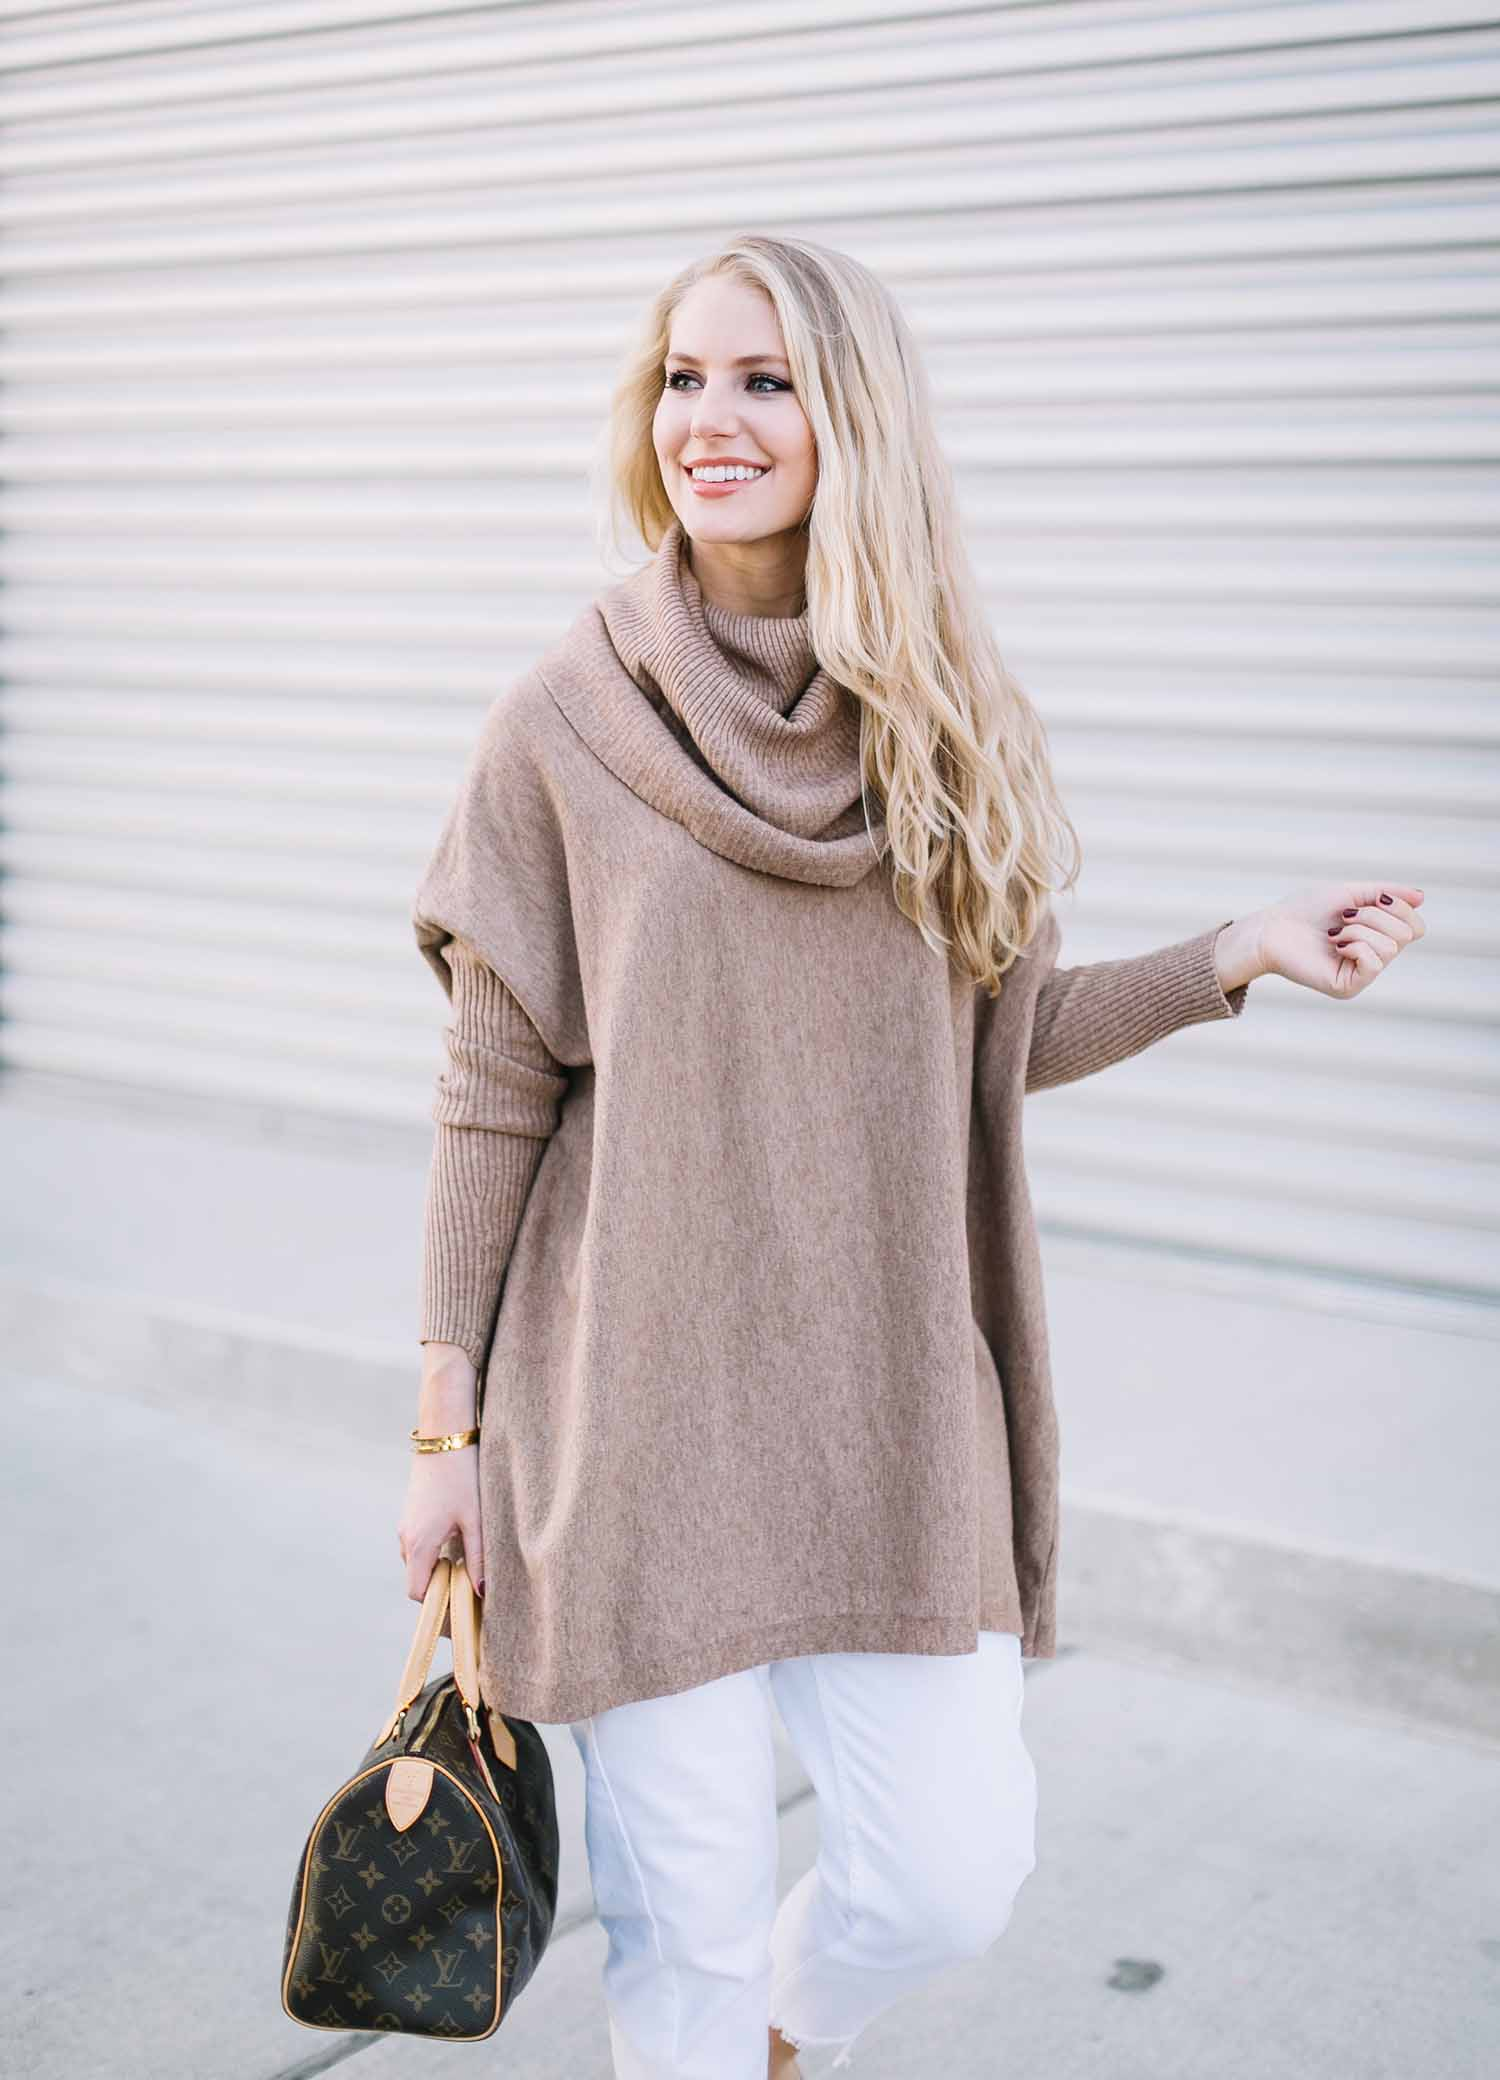 Sweaters In Spring - The Trendy Tomboy